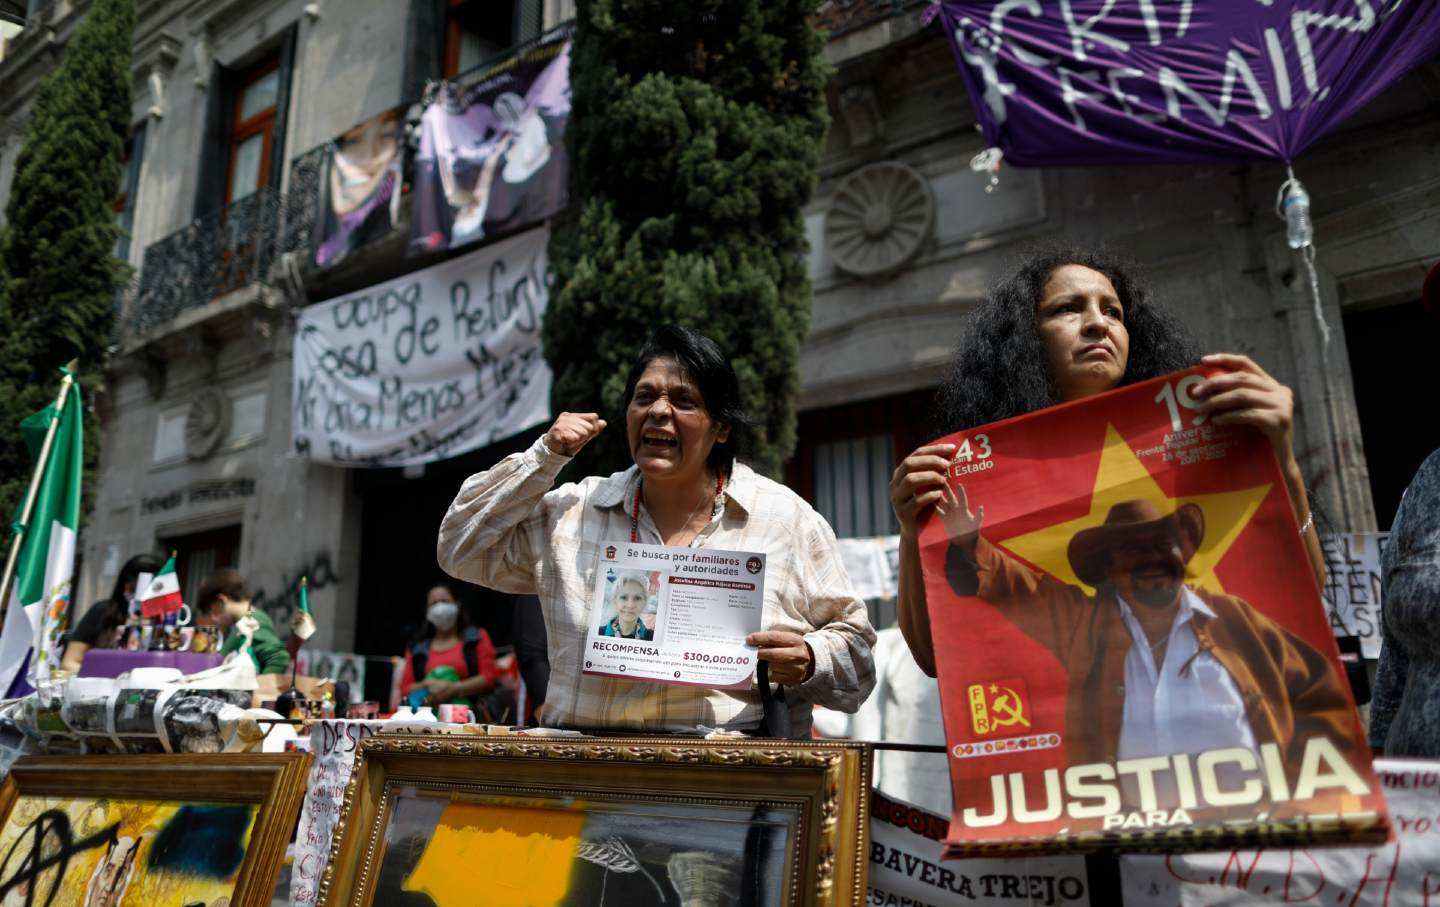 Women stand holding posters and calling for justice.